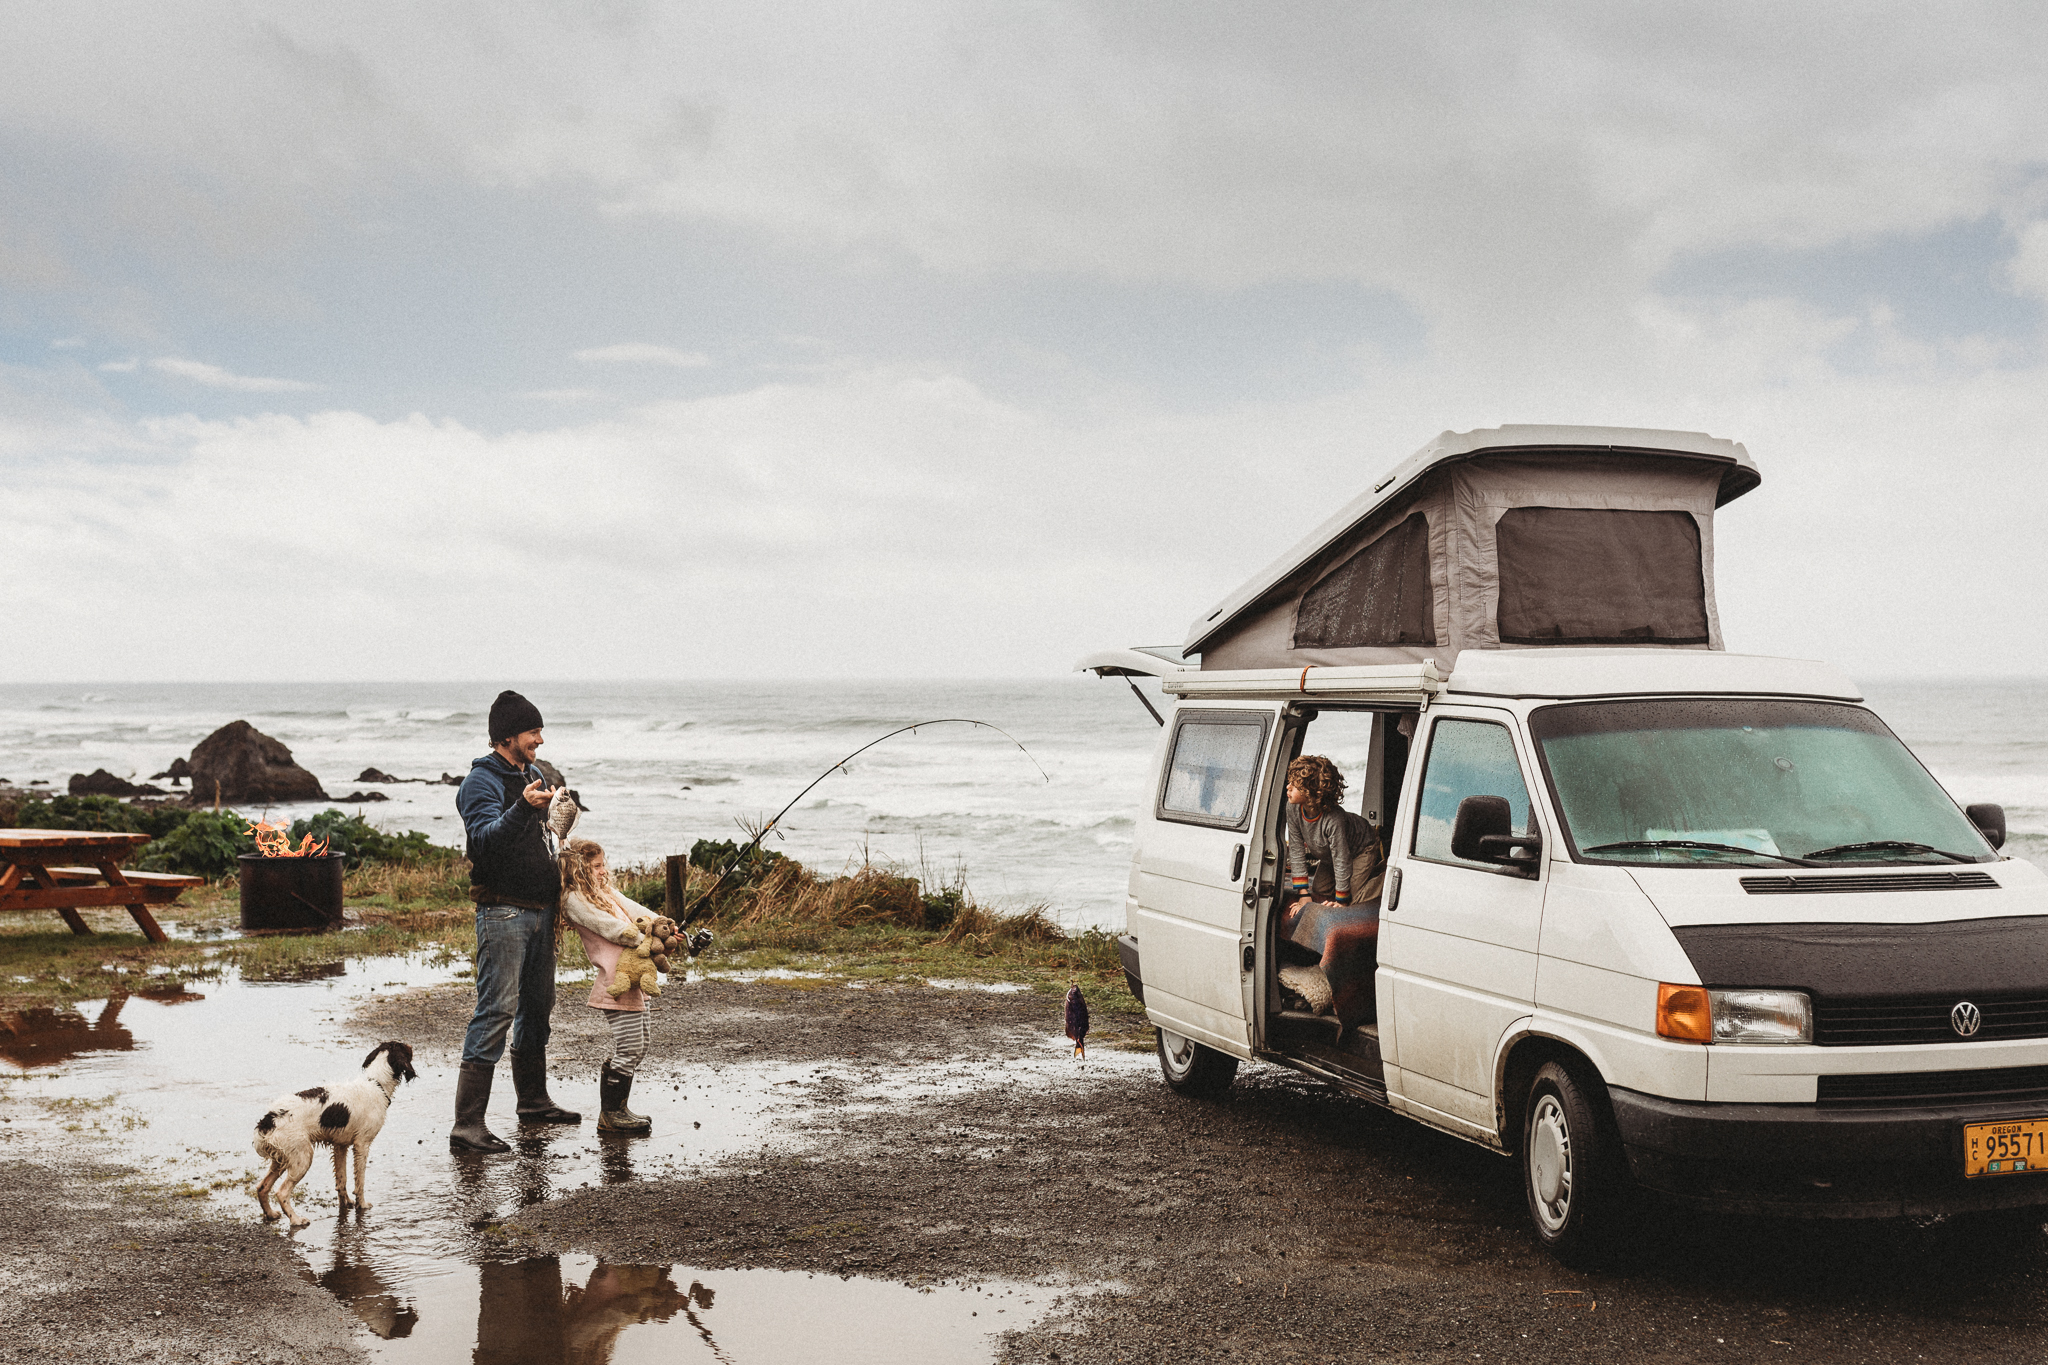 fishing on the oregon coast camper van.jpg